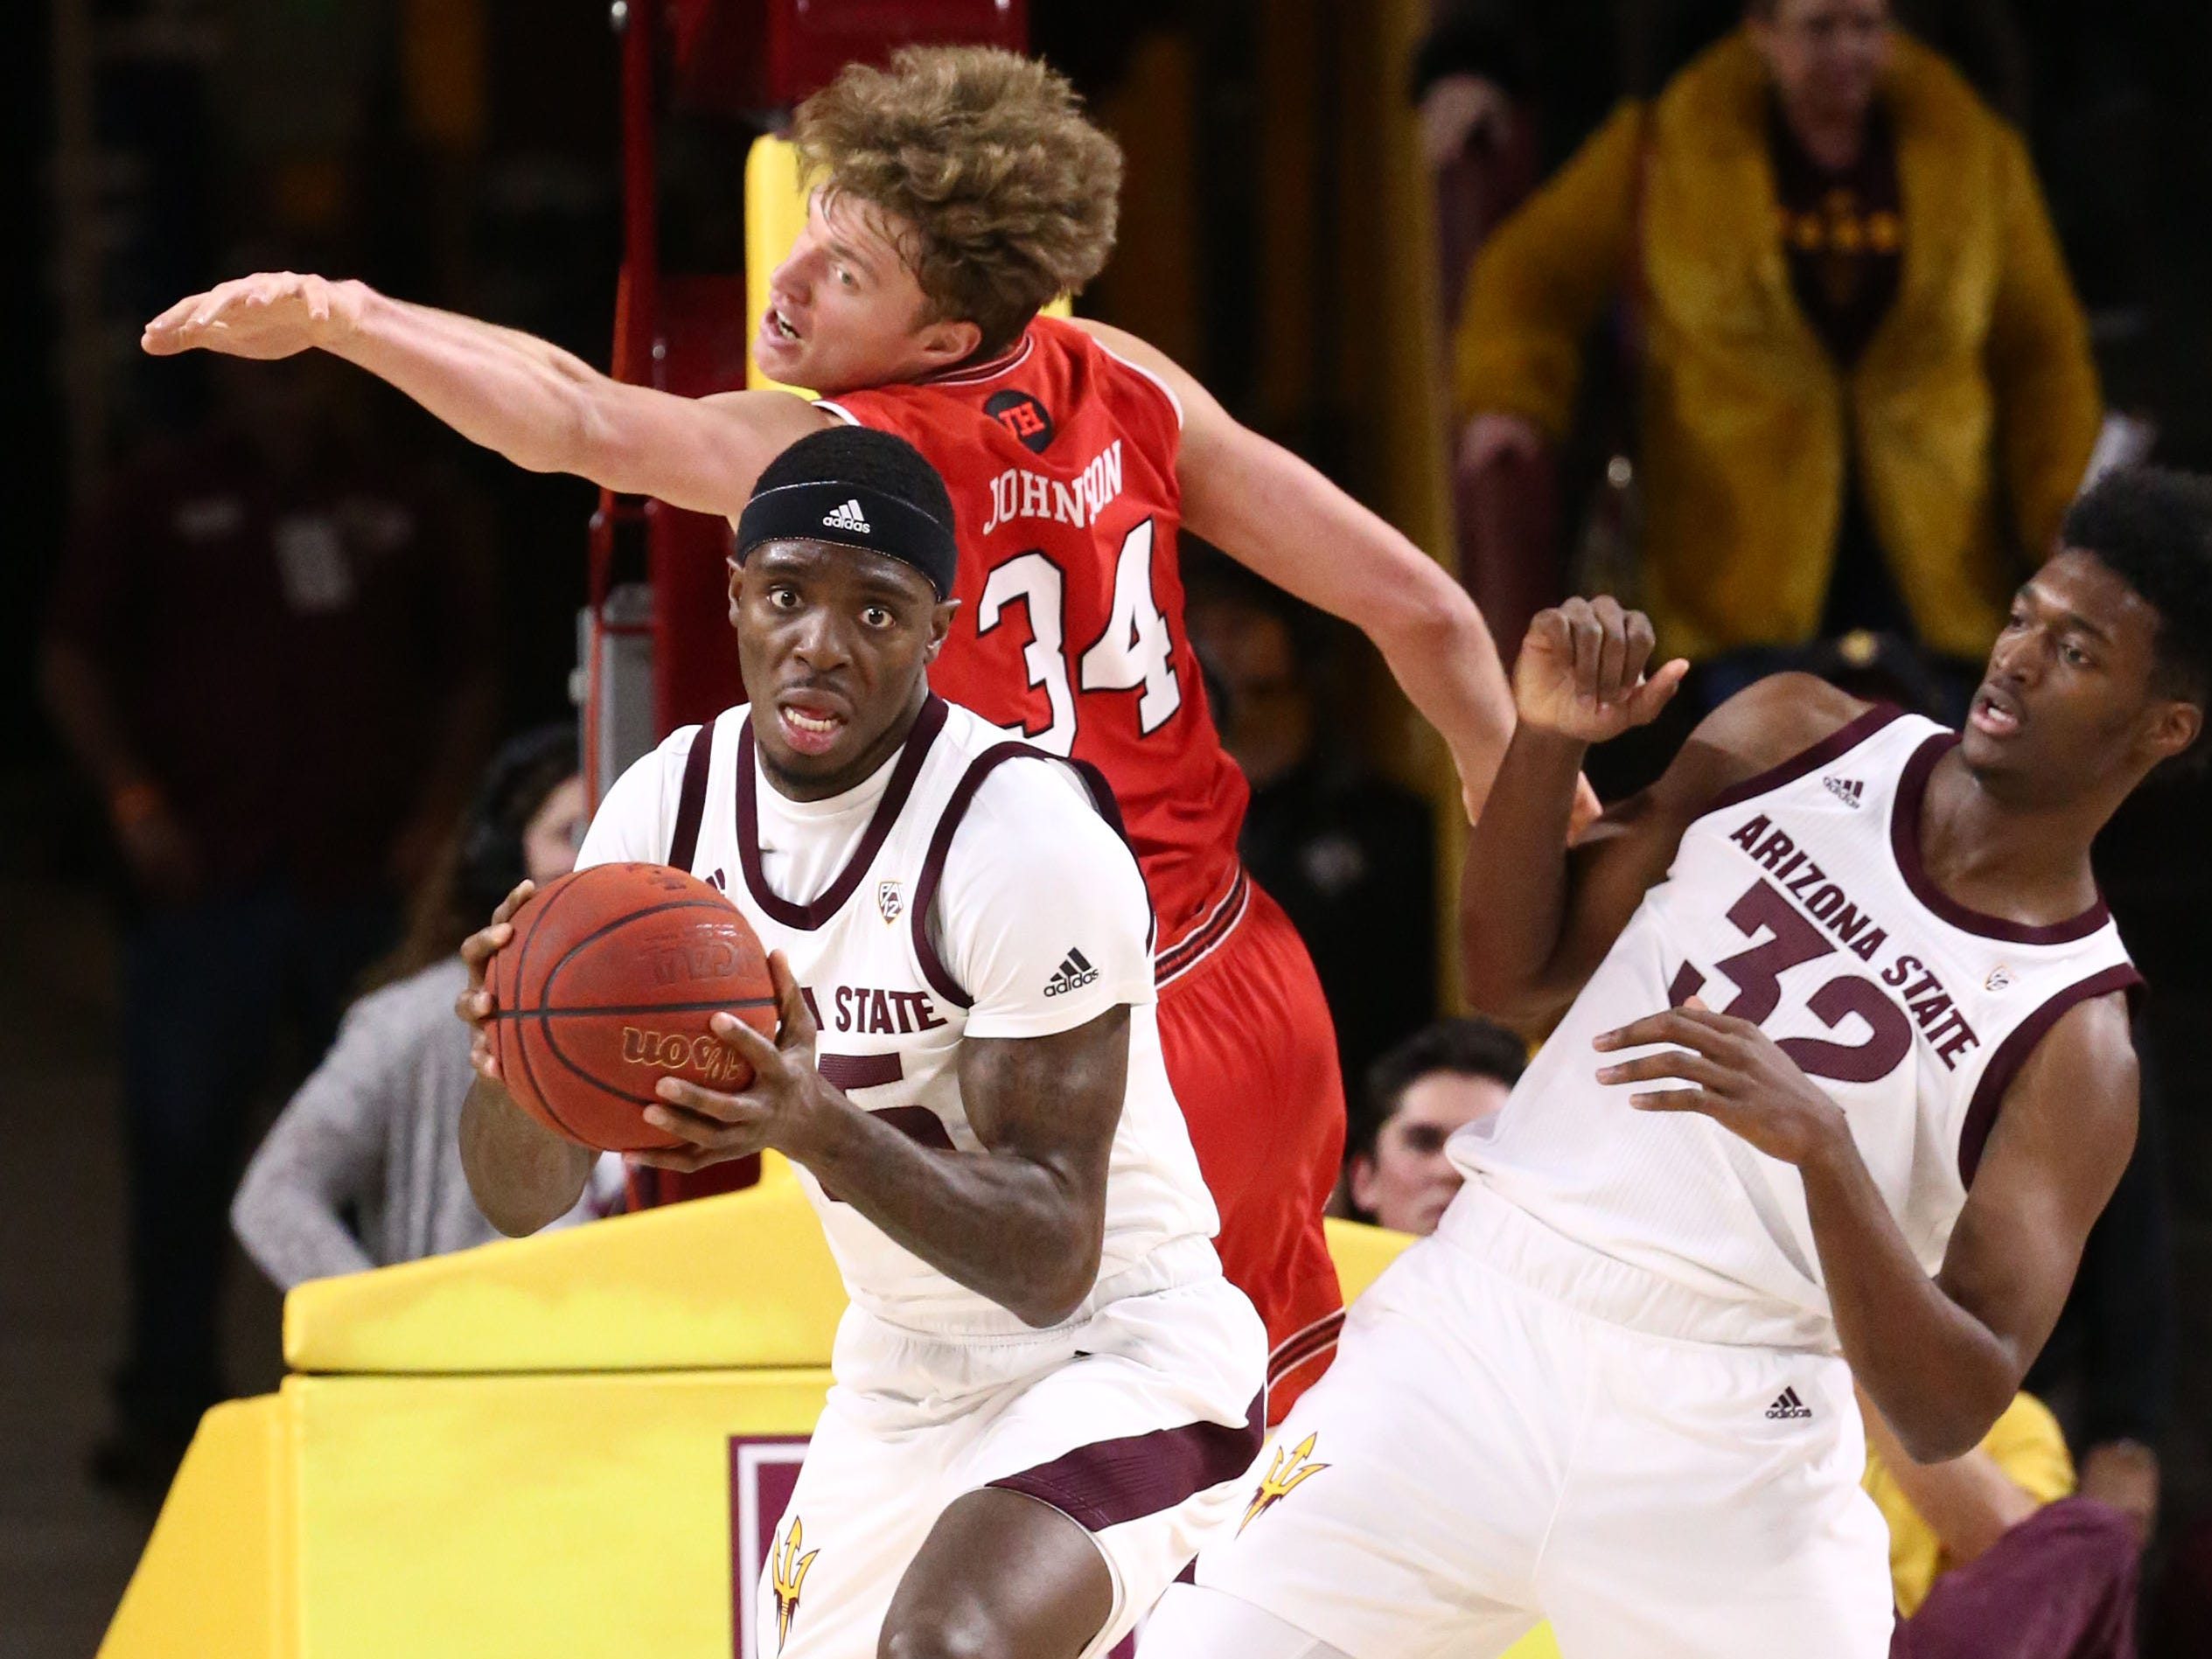 Arizona State Sun Devils forward Zylan Cheatham rebounds the ball against the Utah Utes in the first half on Jan. 3 at Wells Fargo Arena in Tempe.